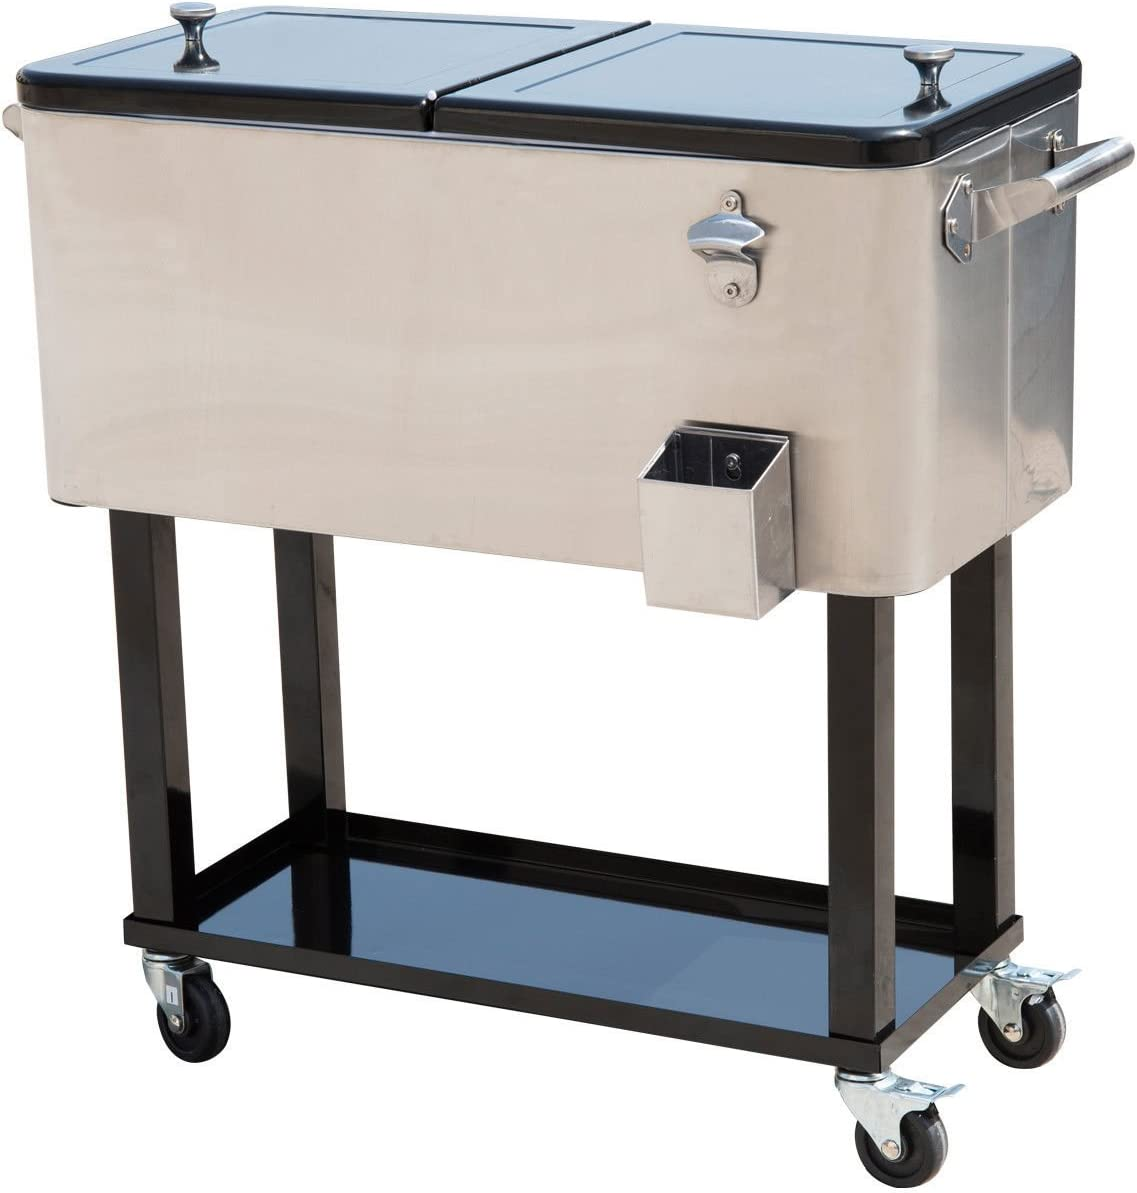 Outsunny 80 QT Rolling Cooler Ice Chest on Wheels Outdoor Stand Up Drink Cooler Cart for Party, Stainless Steel